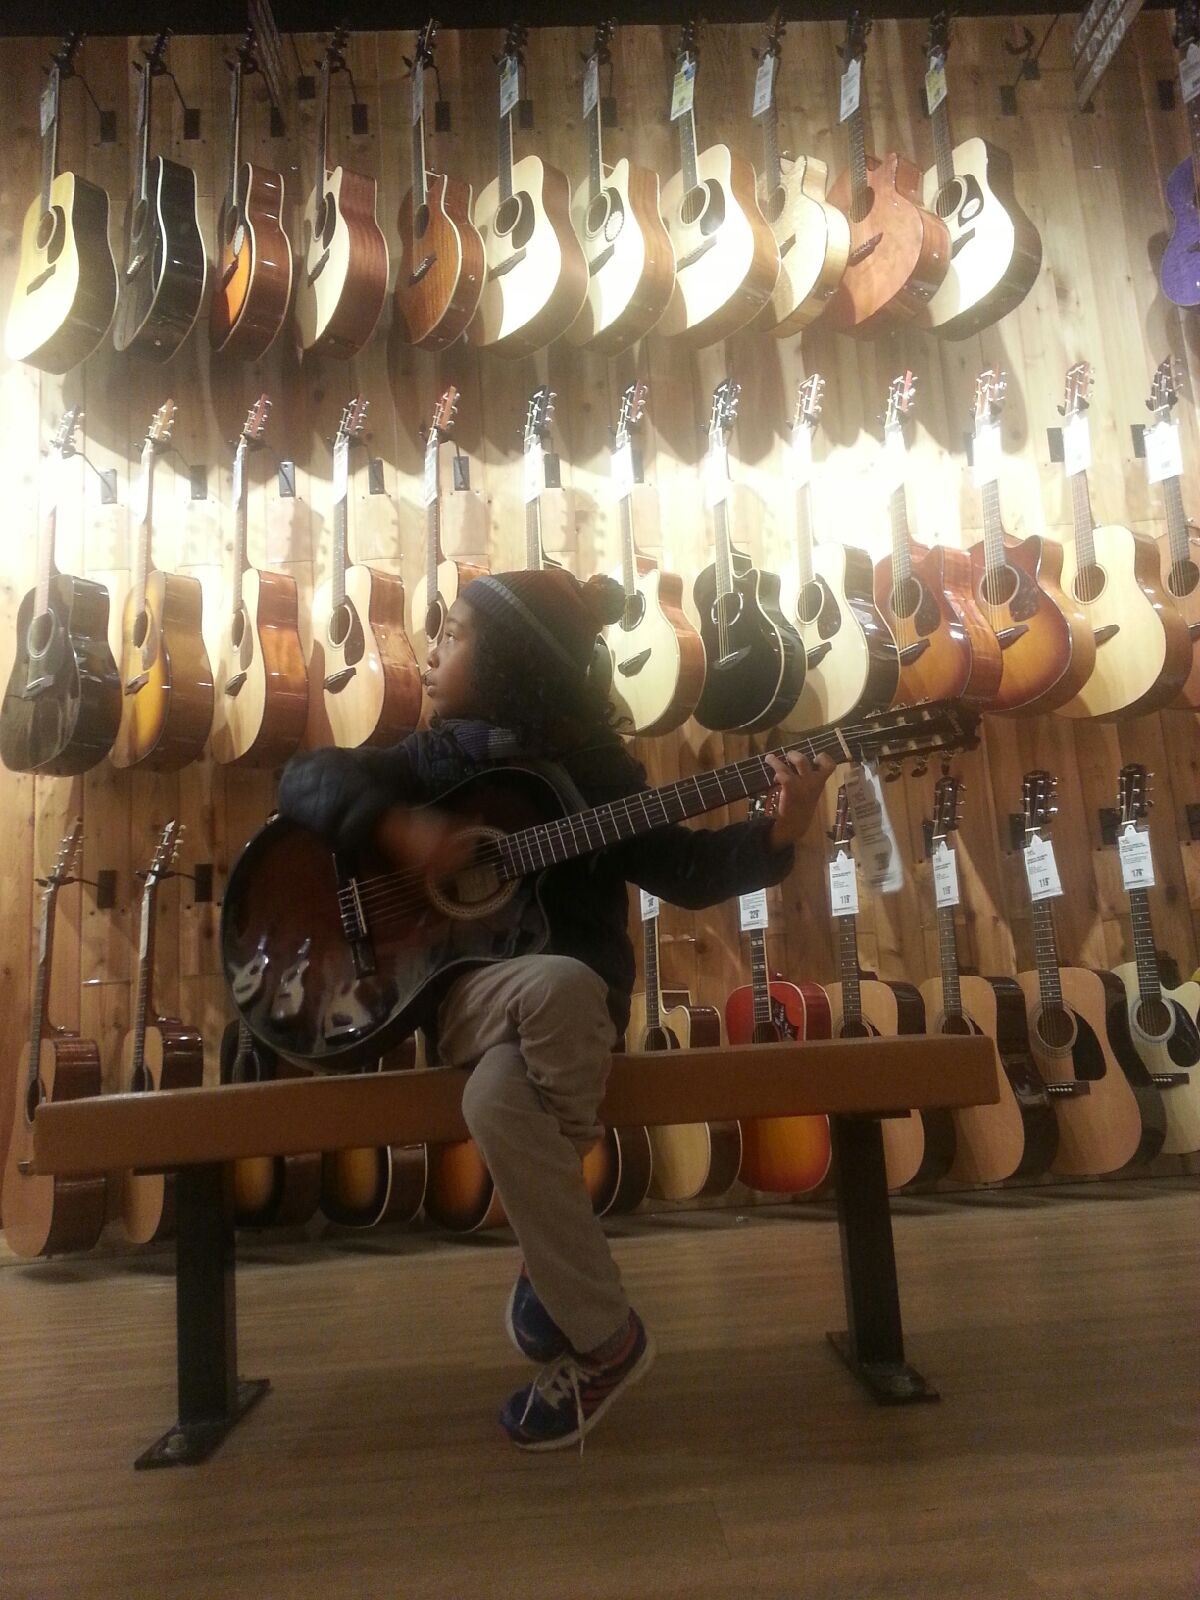 Marel at Guitar Center January, 21, 2016